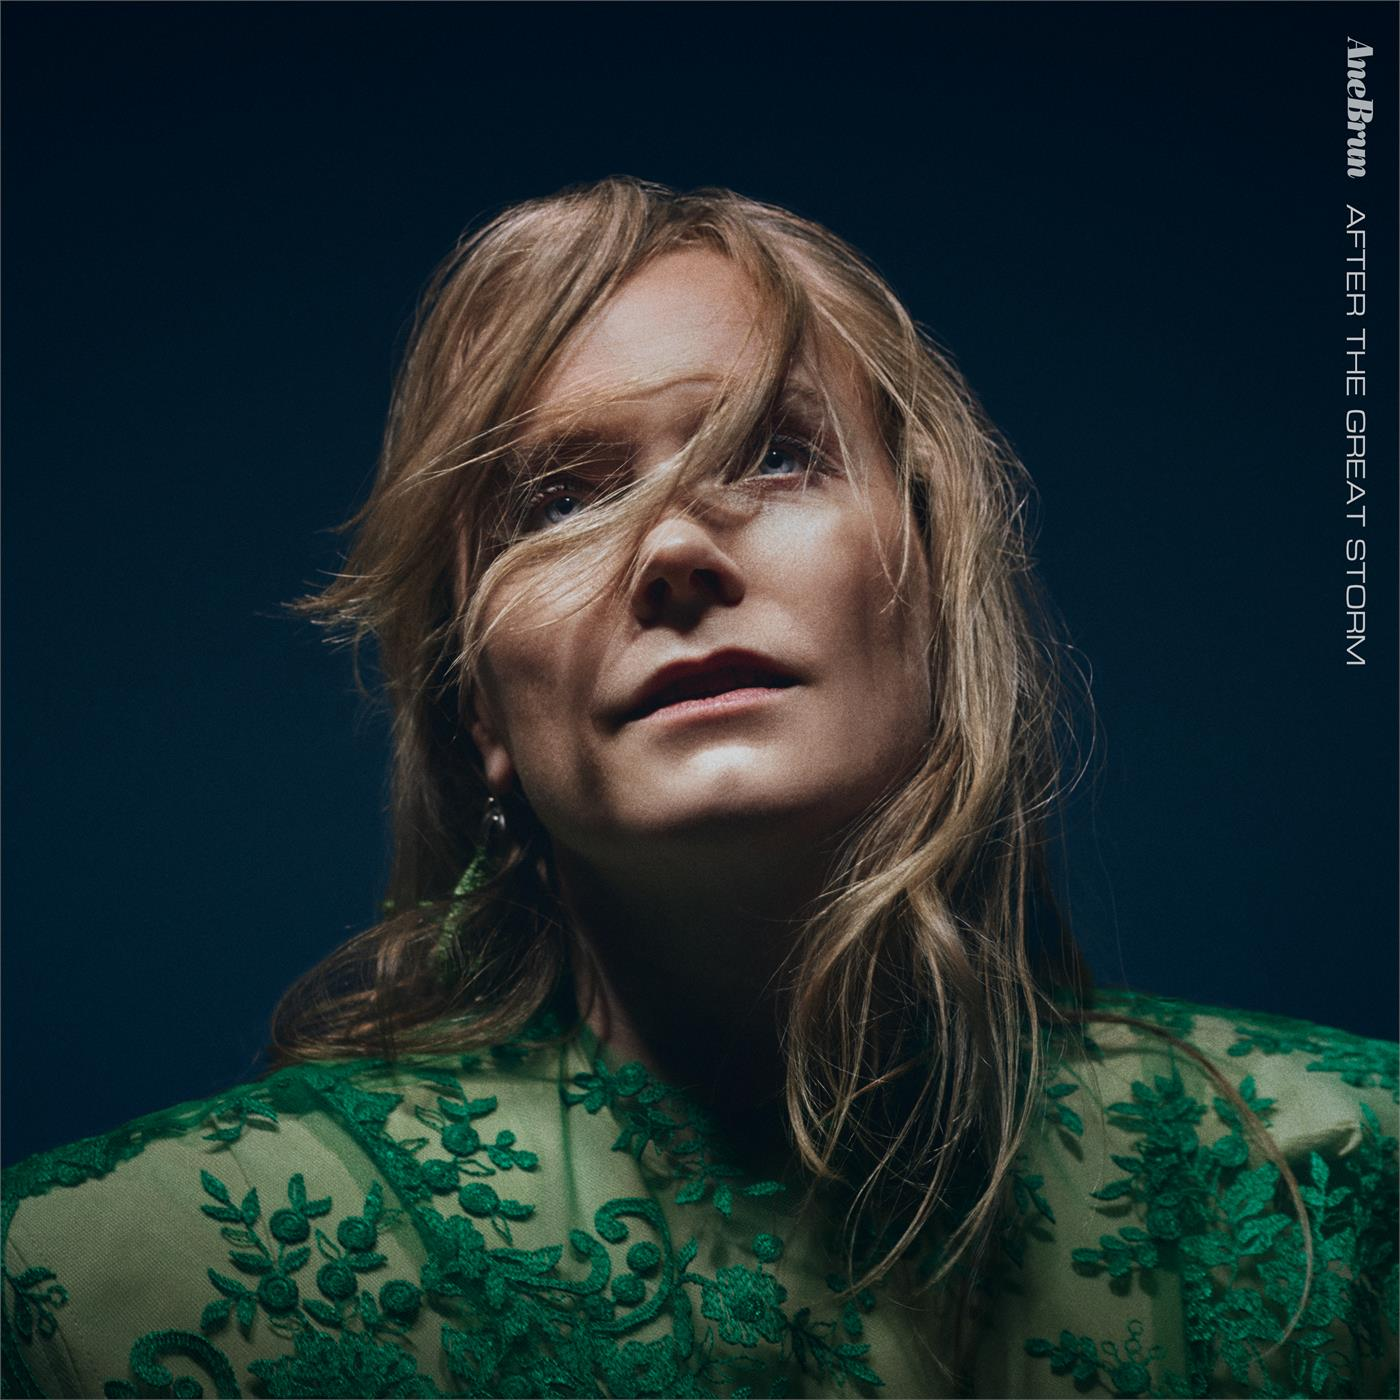 Ane Brun - After The Great Storm [LP]